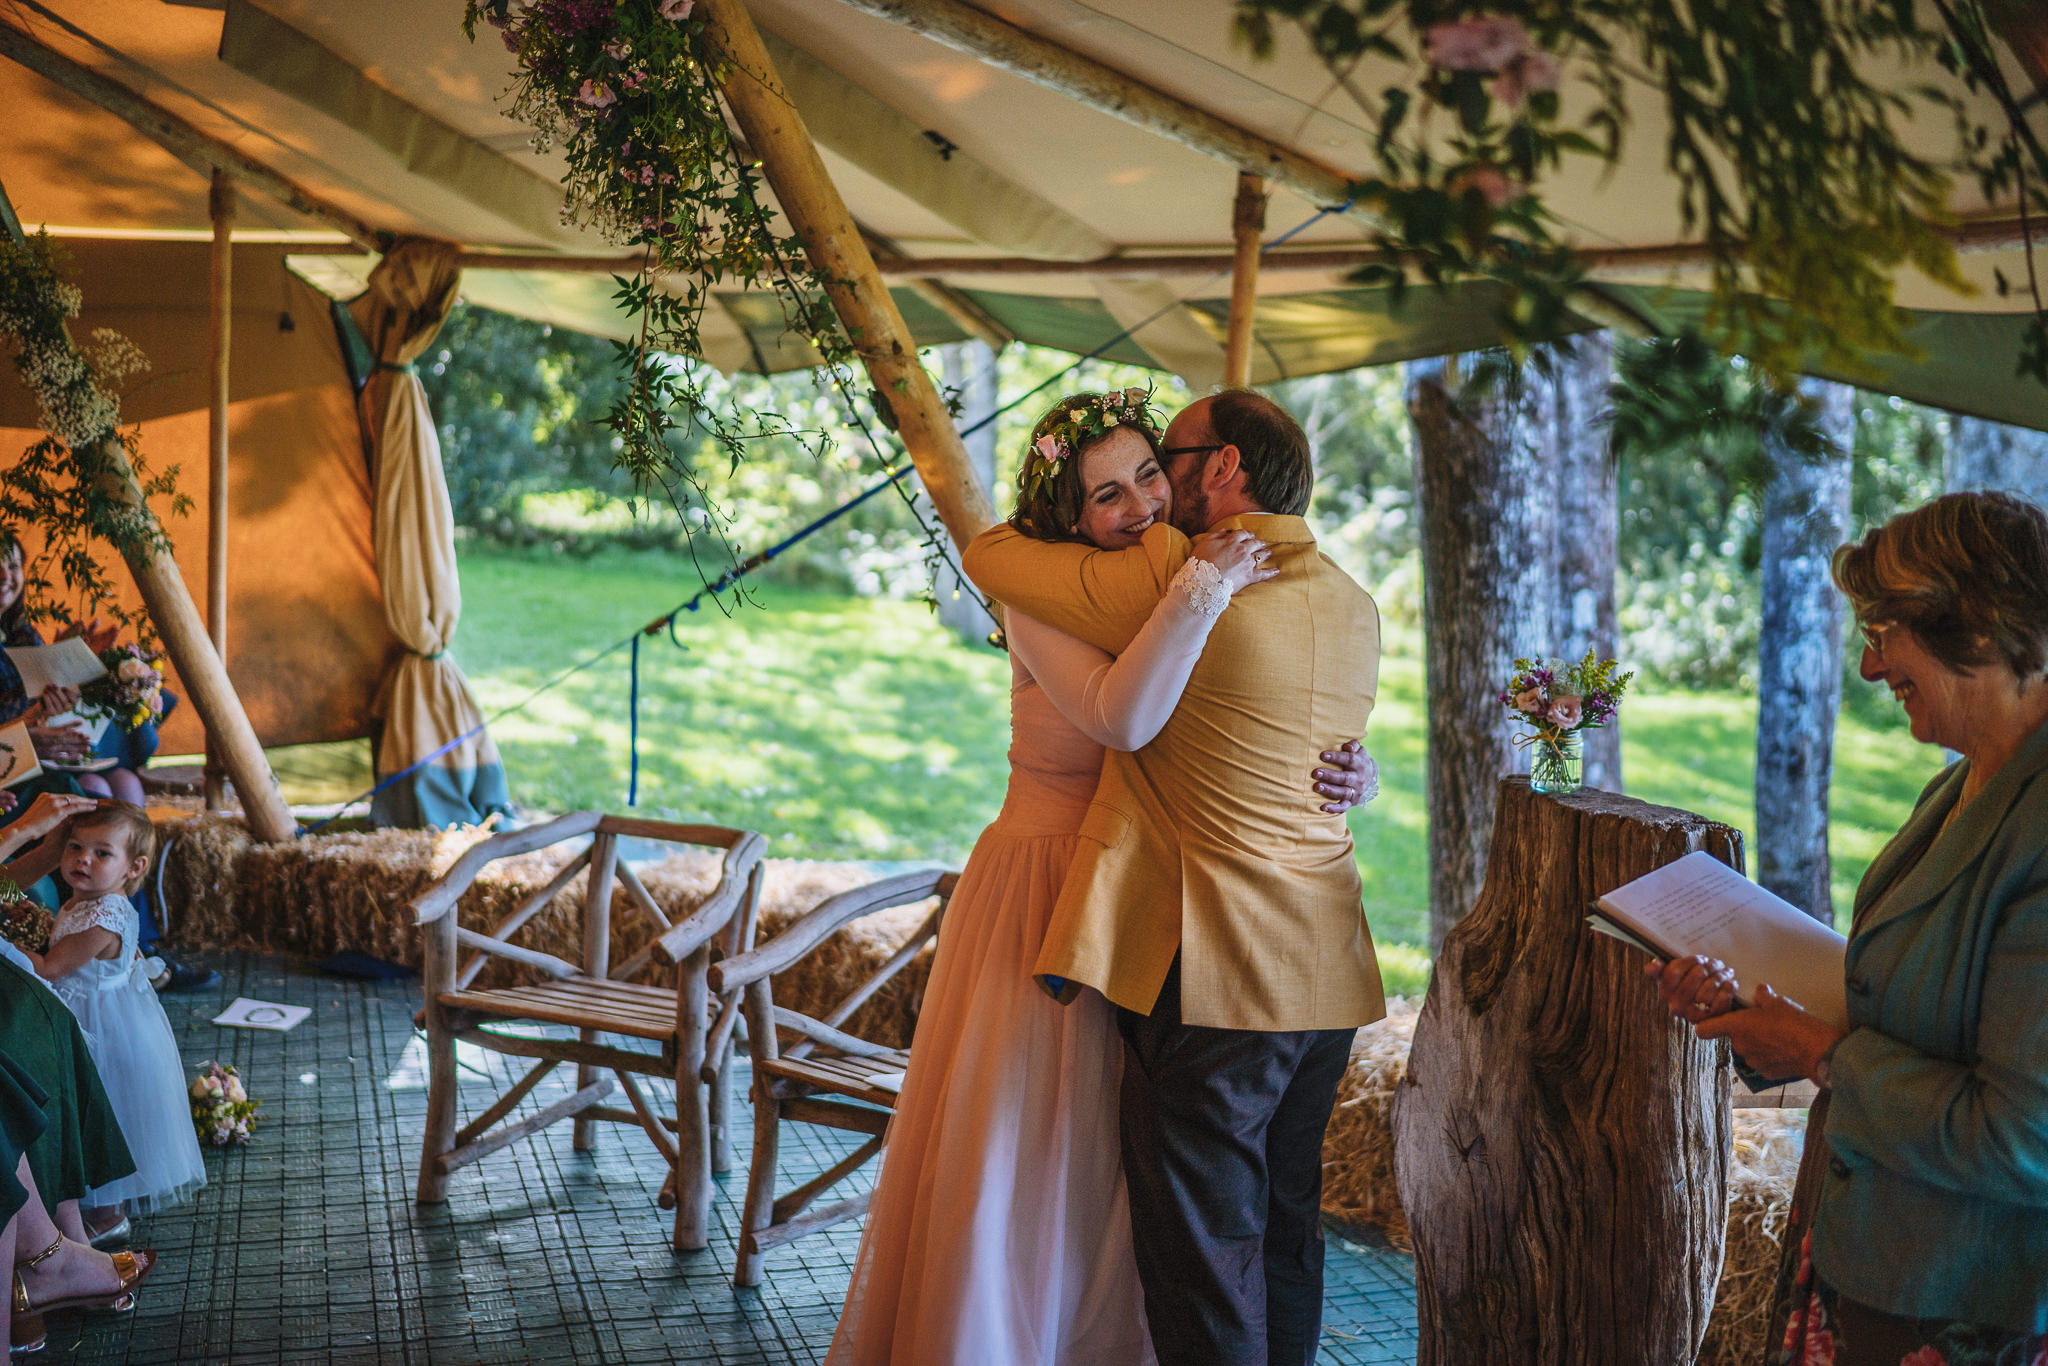 paul-marbrook-Fforest-Wedding-Photographer-90038